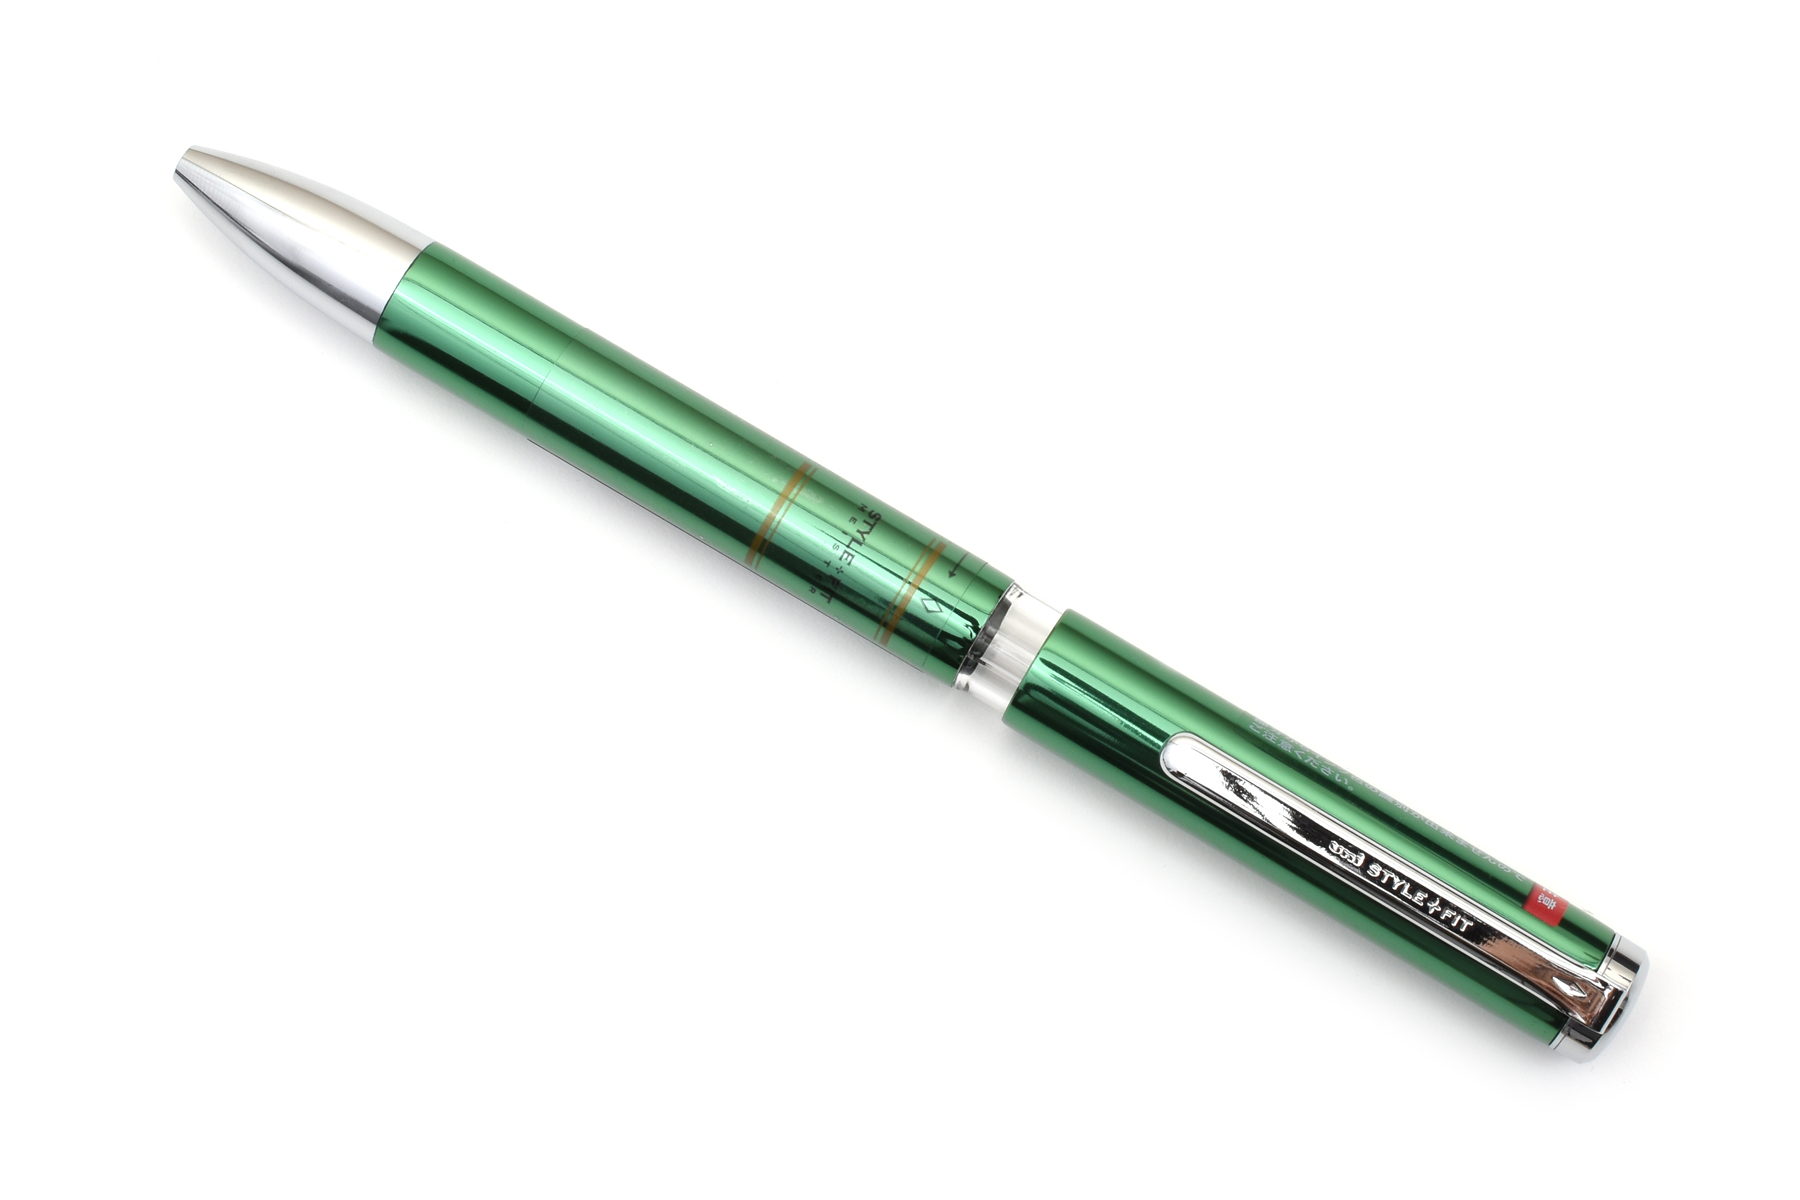 Uni Style Fit Meister 3 Color Multi Pen Body Component - Mint Green - UNI UE3H1008.31